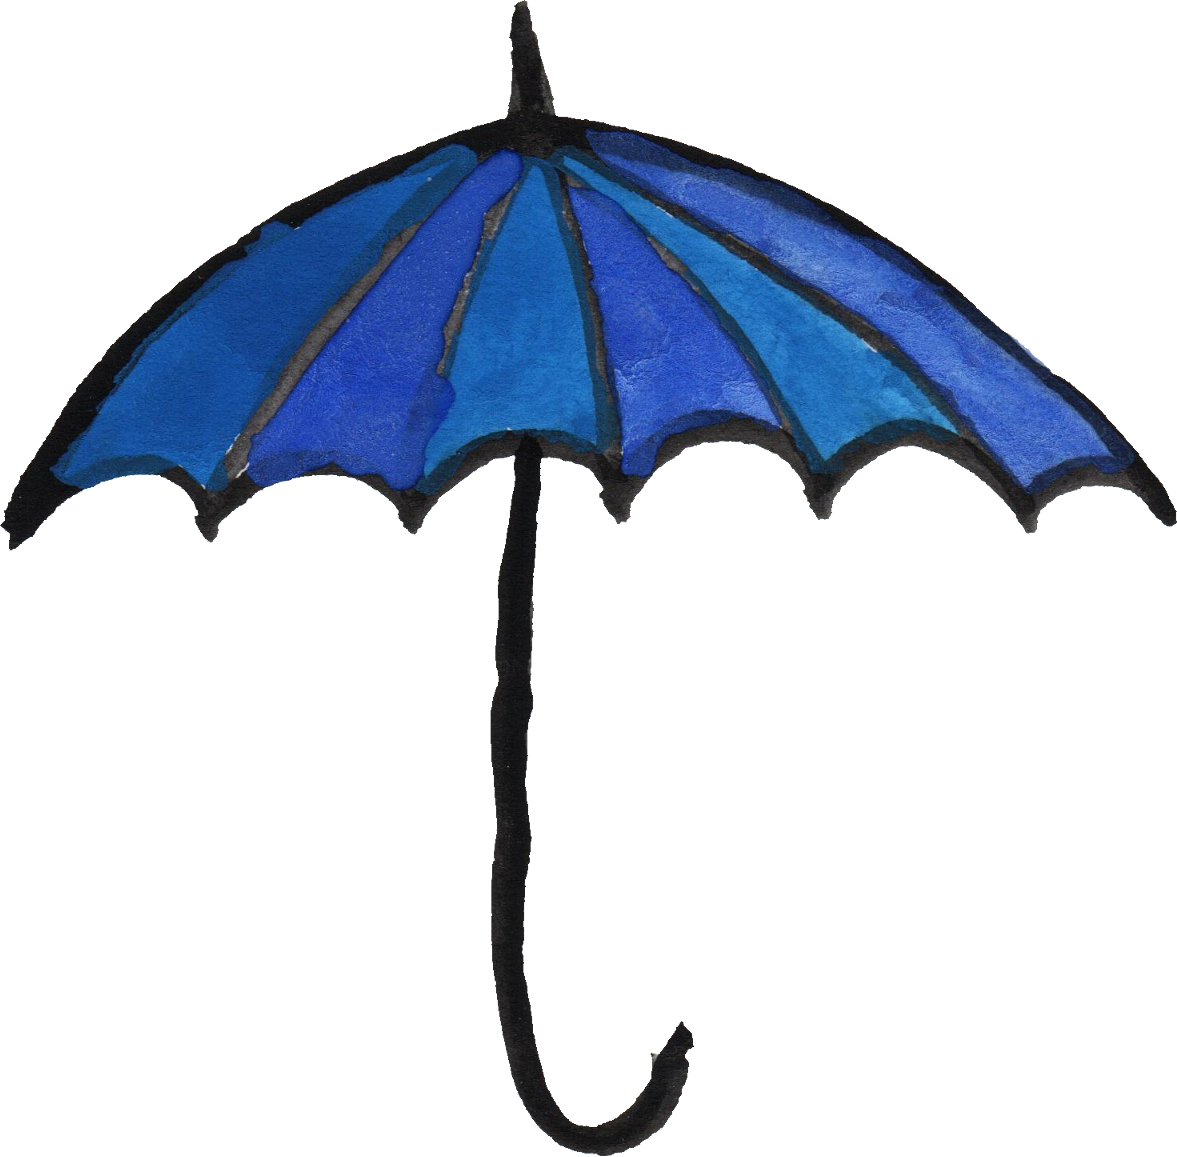 Umbrella Download PNG Image SVG Clip arts